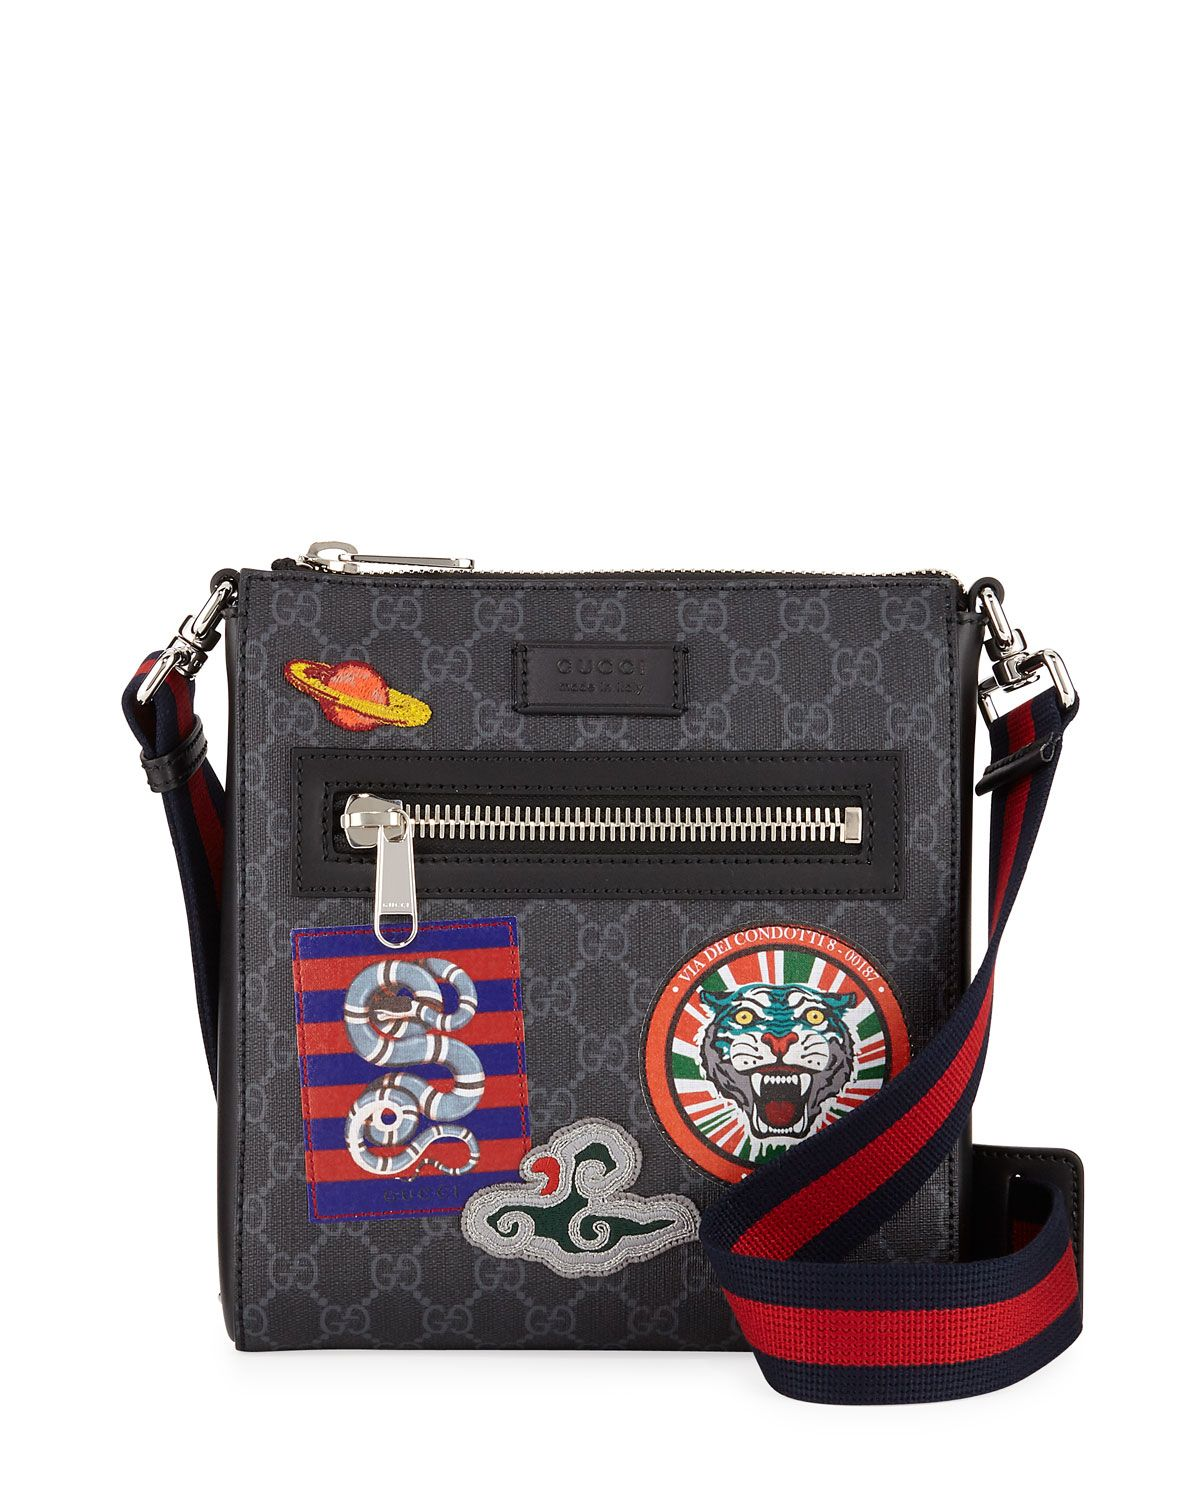 6ec92ab9edb GUCCI MEN S GG SUPREME PATCHES MESSENGER BAG.  gucci  bags  shoulder bags   canvas  crossbody